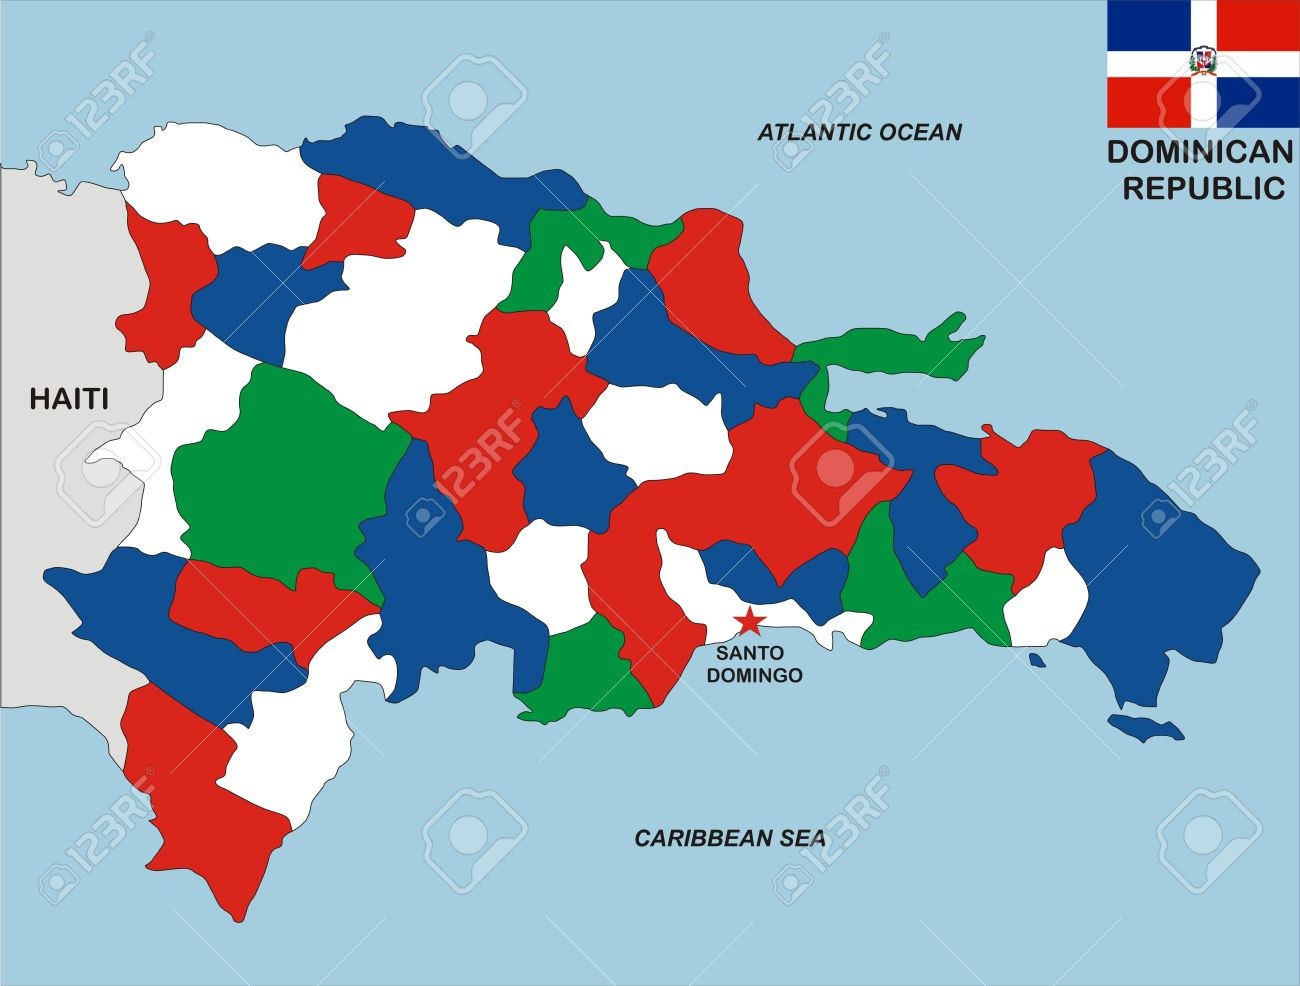 Very Big Size Dominican Republic Political Map With Flag Stock Photo